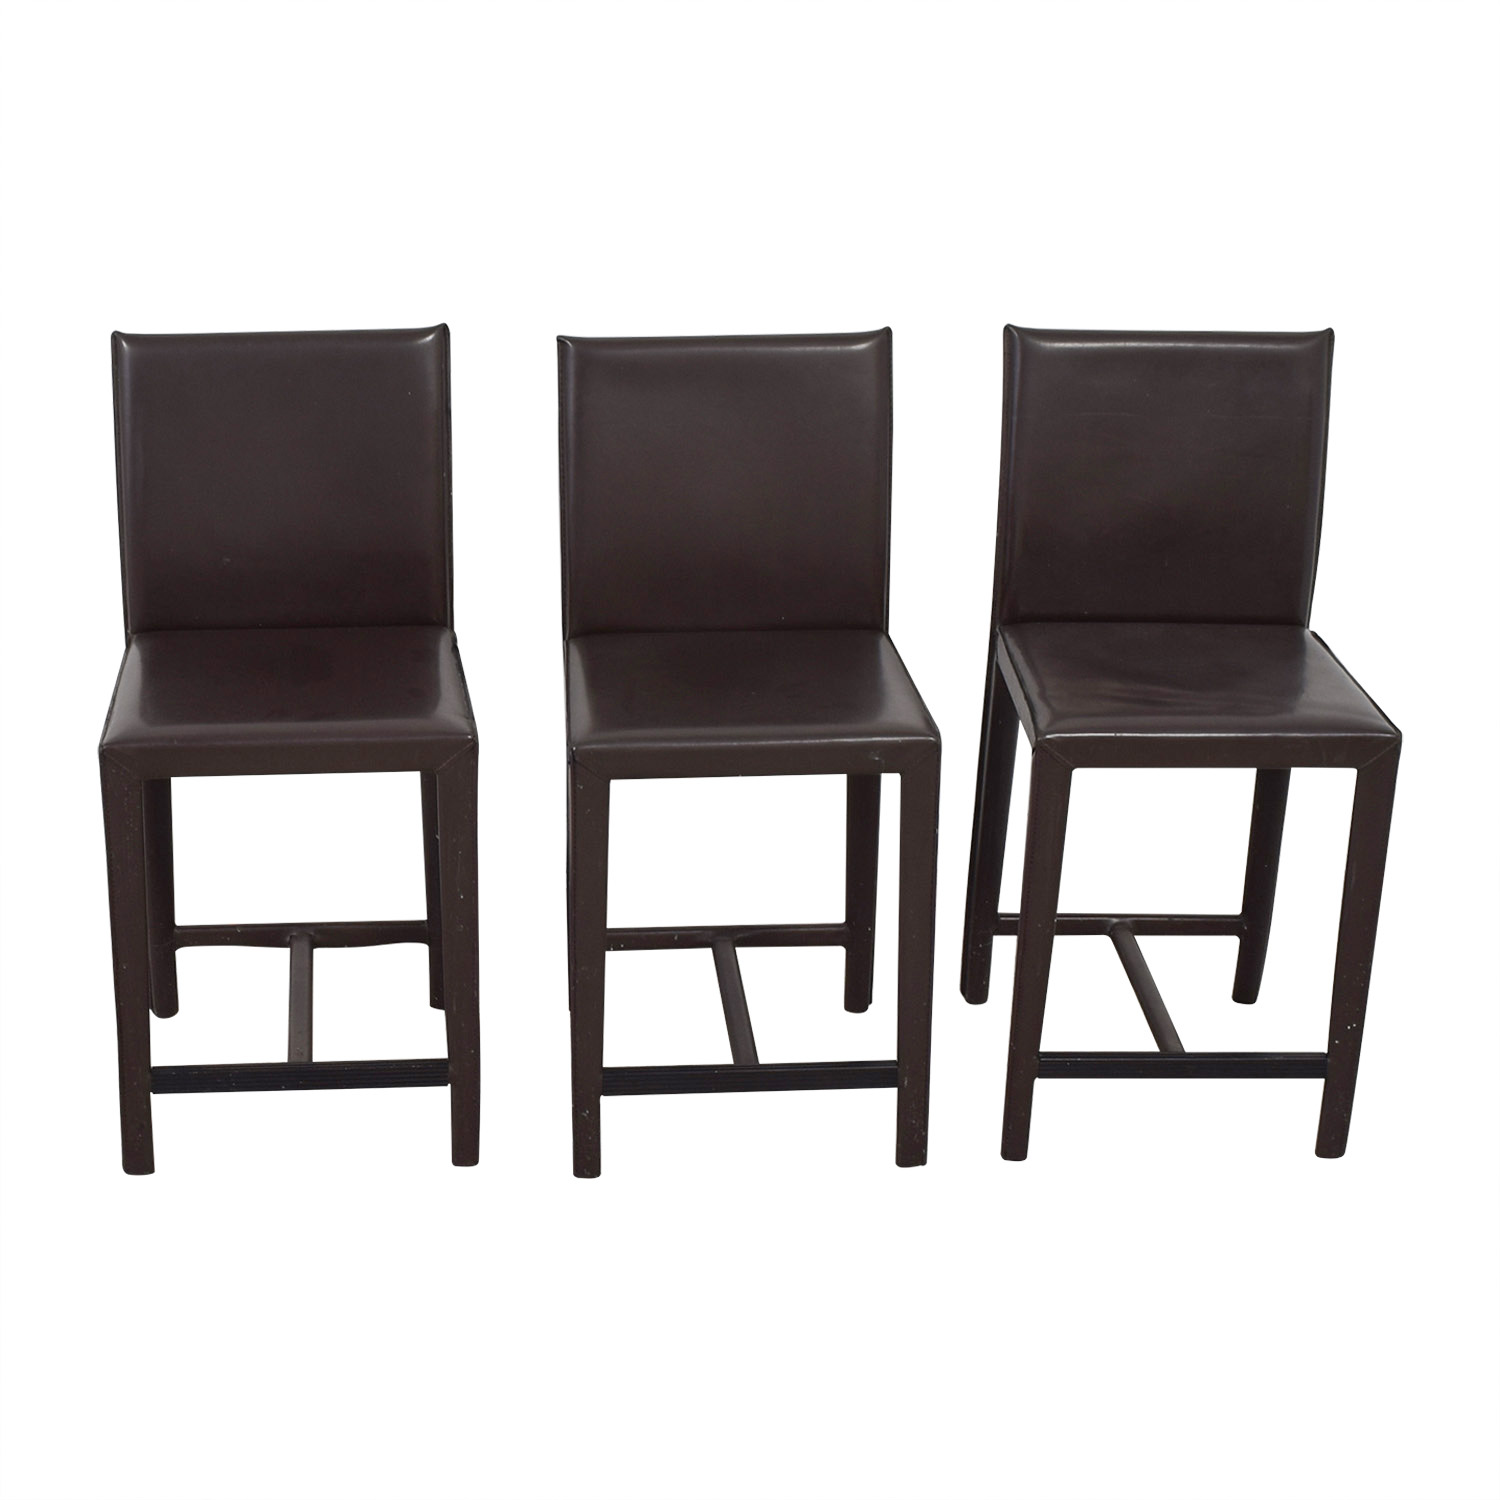 Crate & Barrel Crate & Barrel Folio Brown Leather Bar Stools on sale